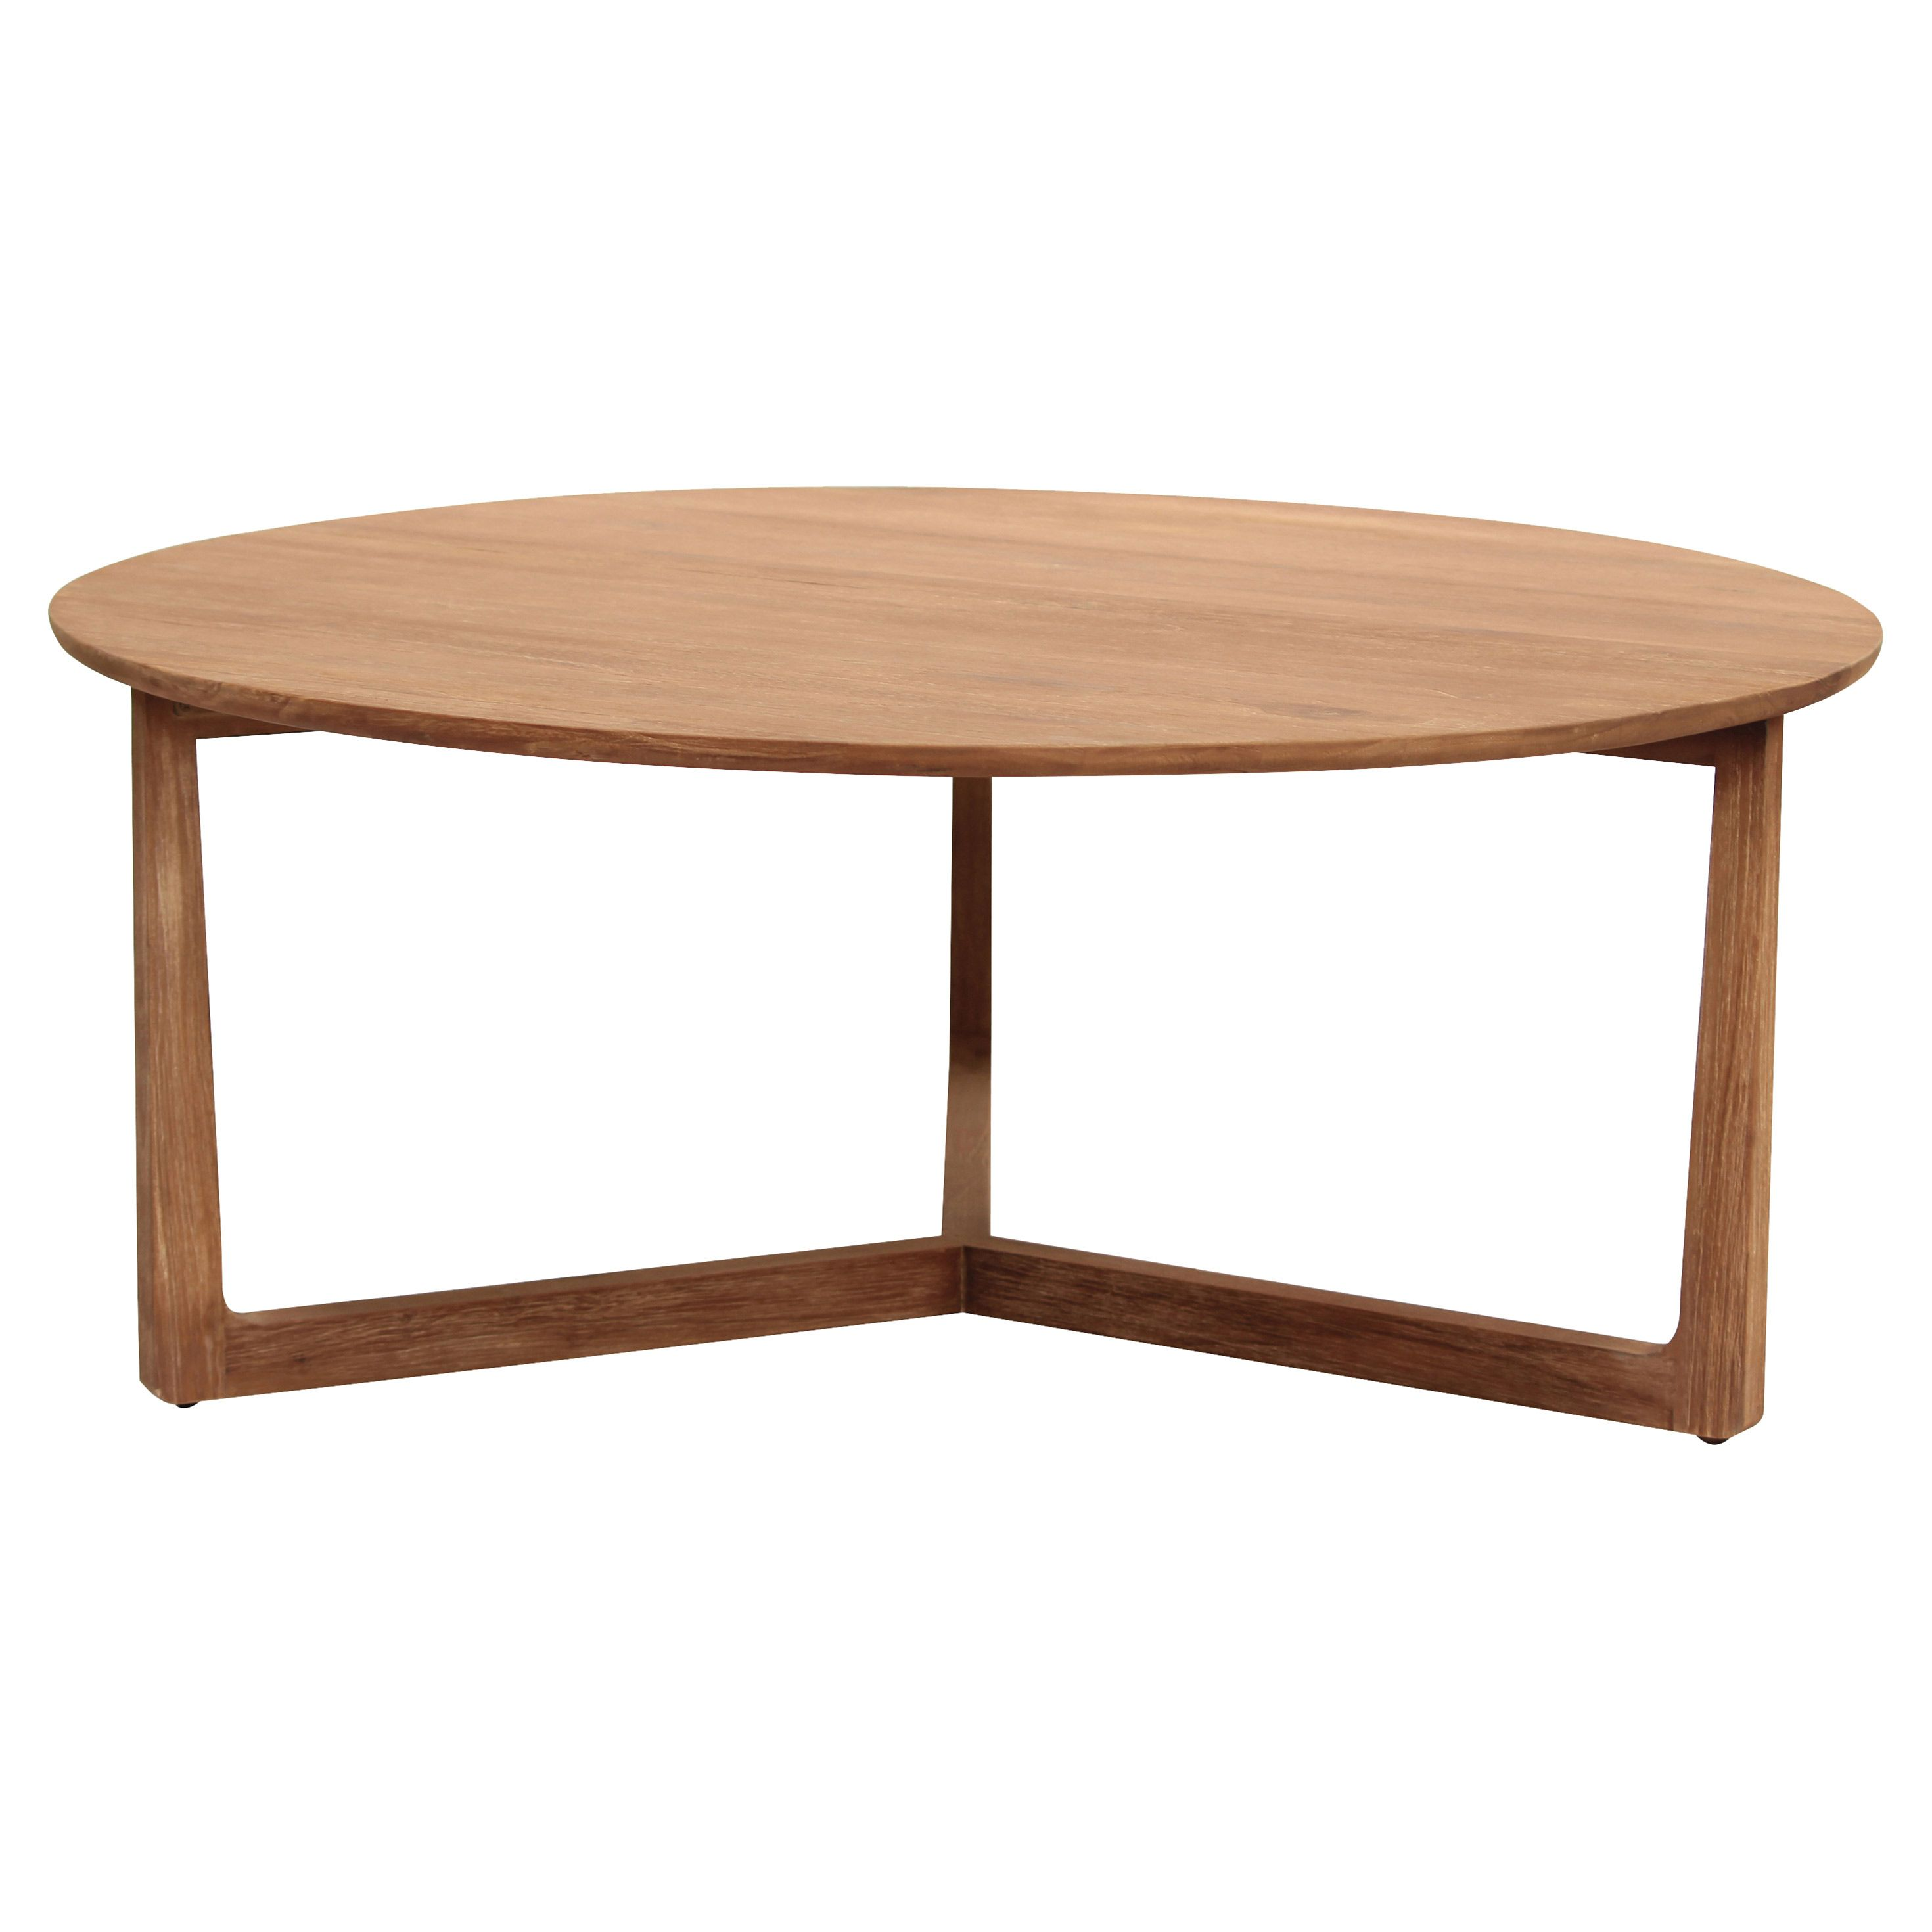 Uwes 103a Hudson Coffee Table Four Hands France Son In 2020 Round Coffee Table France Son Table [ 1000 x 1000 Pixel ]